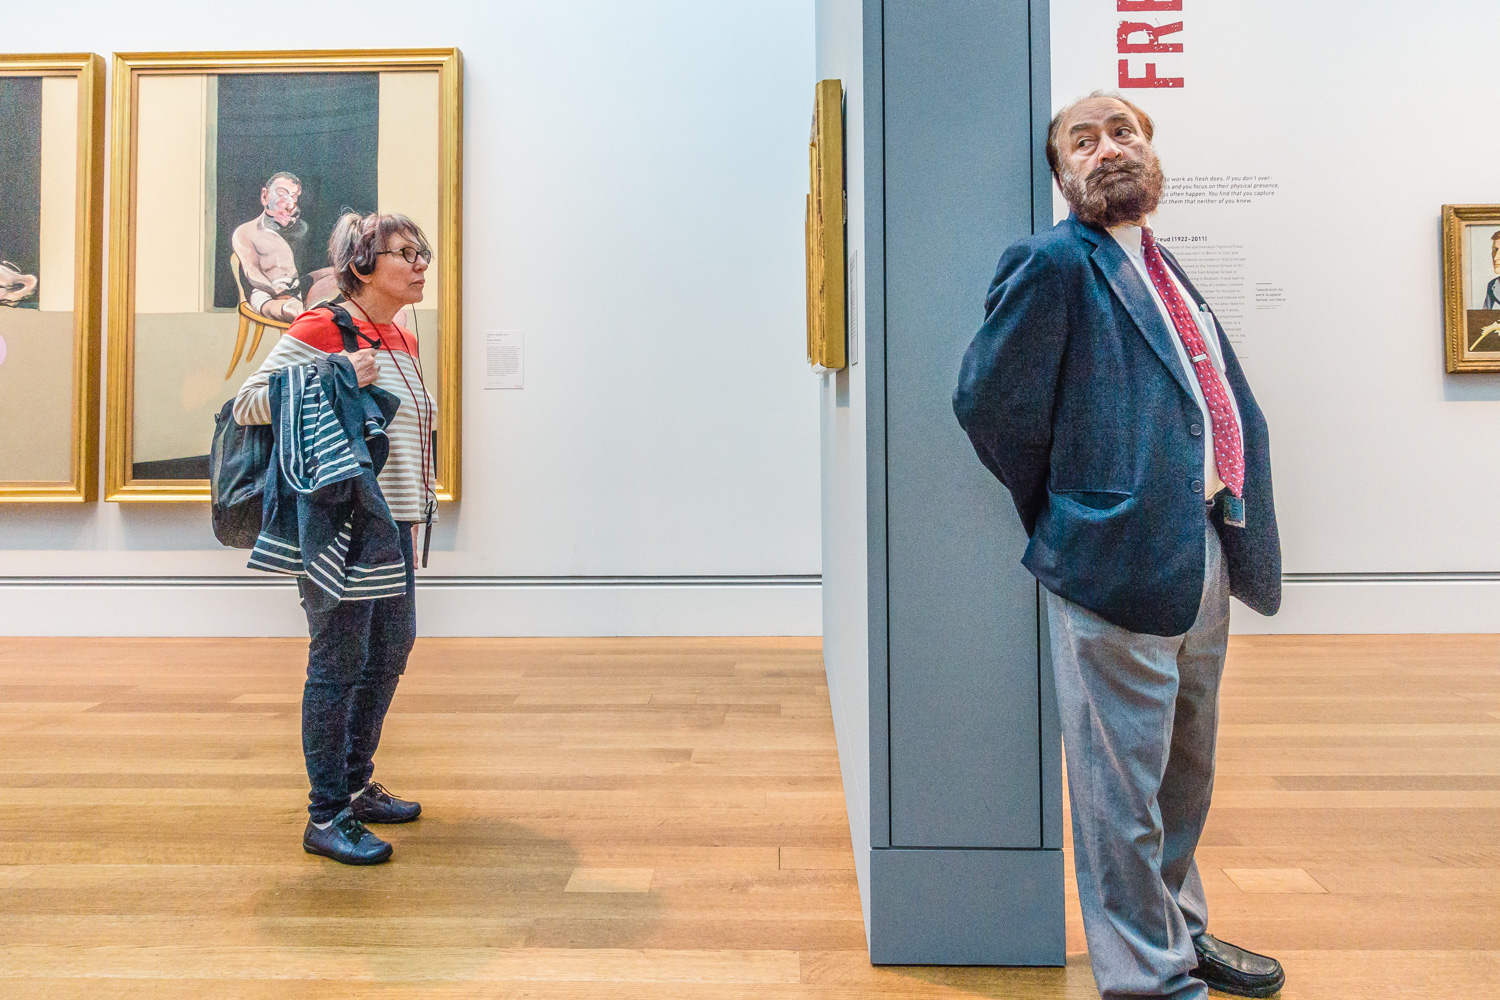 An older female with her audio tour head phones stands in front of a Francis Bacon triptych in a museum  exhibition of his work while a wall separates her from a museum guard leaning against the end of the wall looking away. Francis Bacon (28 October 1909 – 28 April 1992) was an Irish-born British figurative painter known for his bold, grotesque, emotionally charged and raw imagery.His painterly abstracted figures are typically isolated in glass or steel geometrical cages, set against flat, nondescript backgrounds. Bacon took up painting in his early 20s but worked sporadically and uncertainly until his mid-30s. He drifted as a highly complex bon vivant, homosexual, gambler and interior decorator and designer of furniture, rugs and bathroom tiles. He later admitted that his artistic career was delayed because he spent too long looking for subject matter that could sustain his interest.